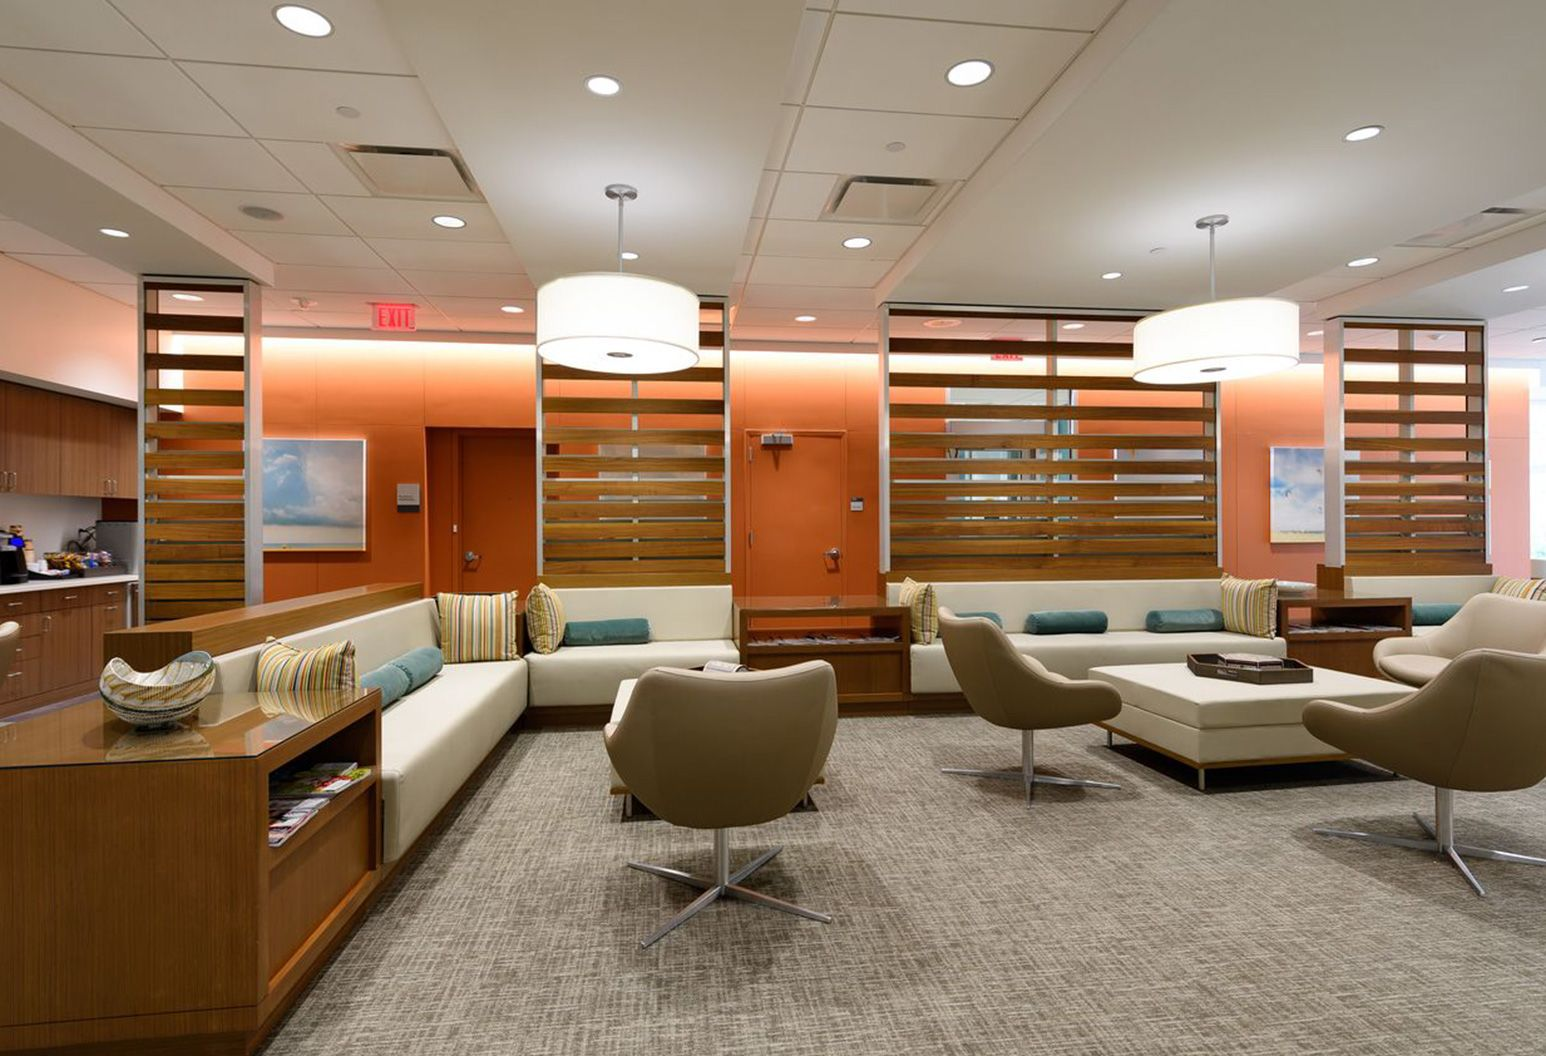 Modern waiting room with white couches,chairs, dark wood tables and accent wood paneling on dark orange colored walls